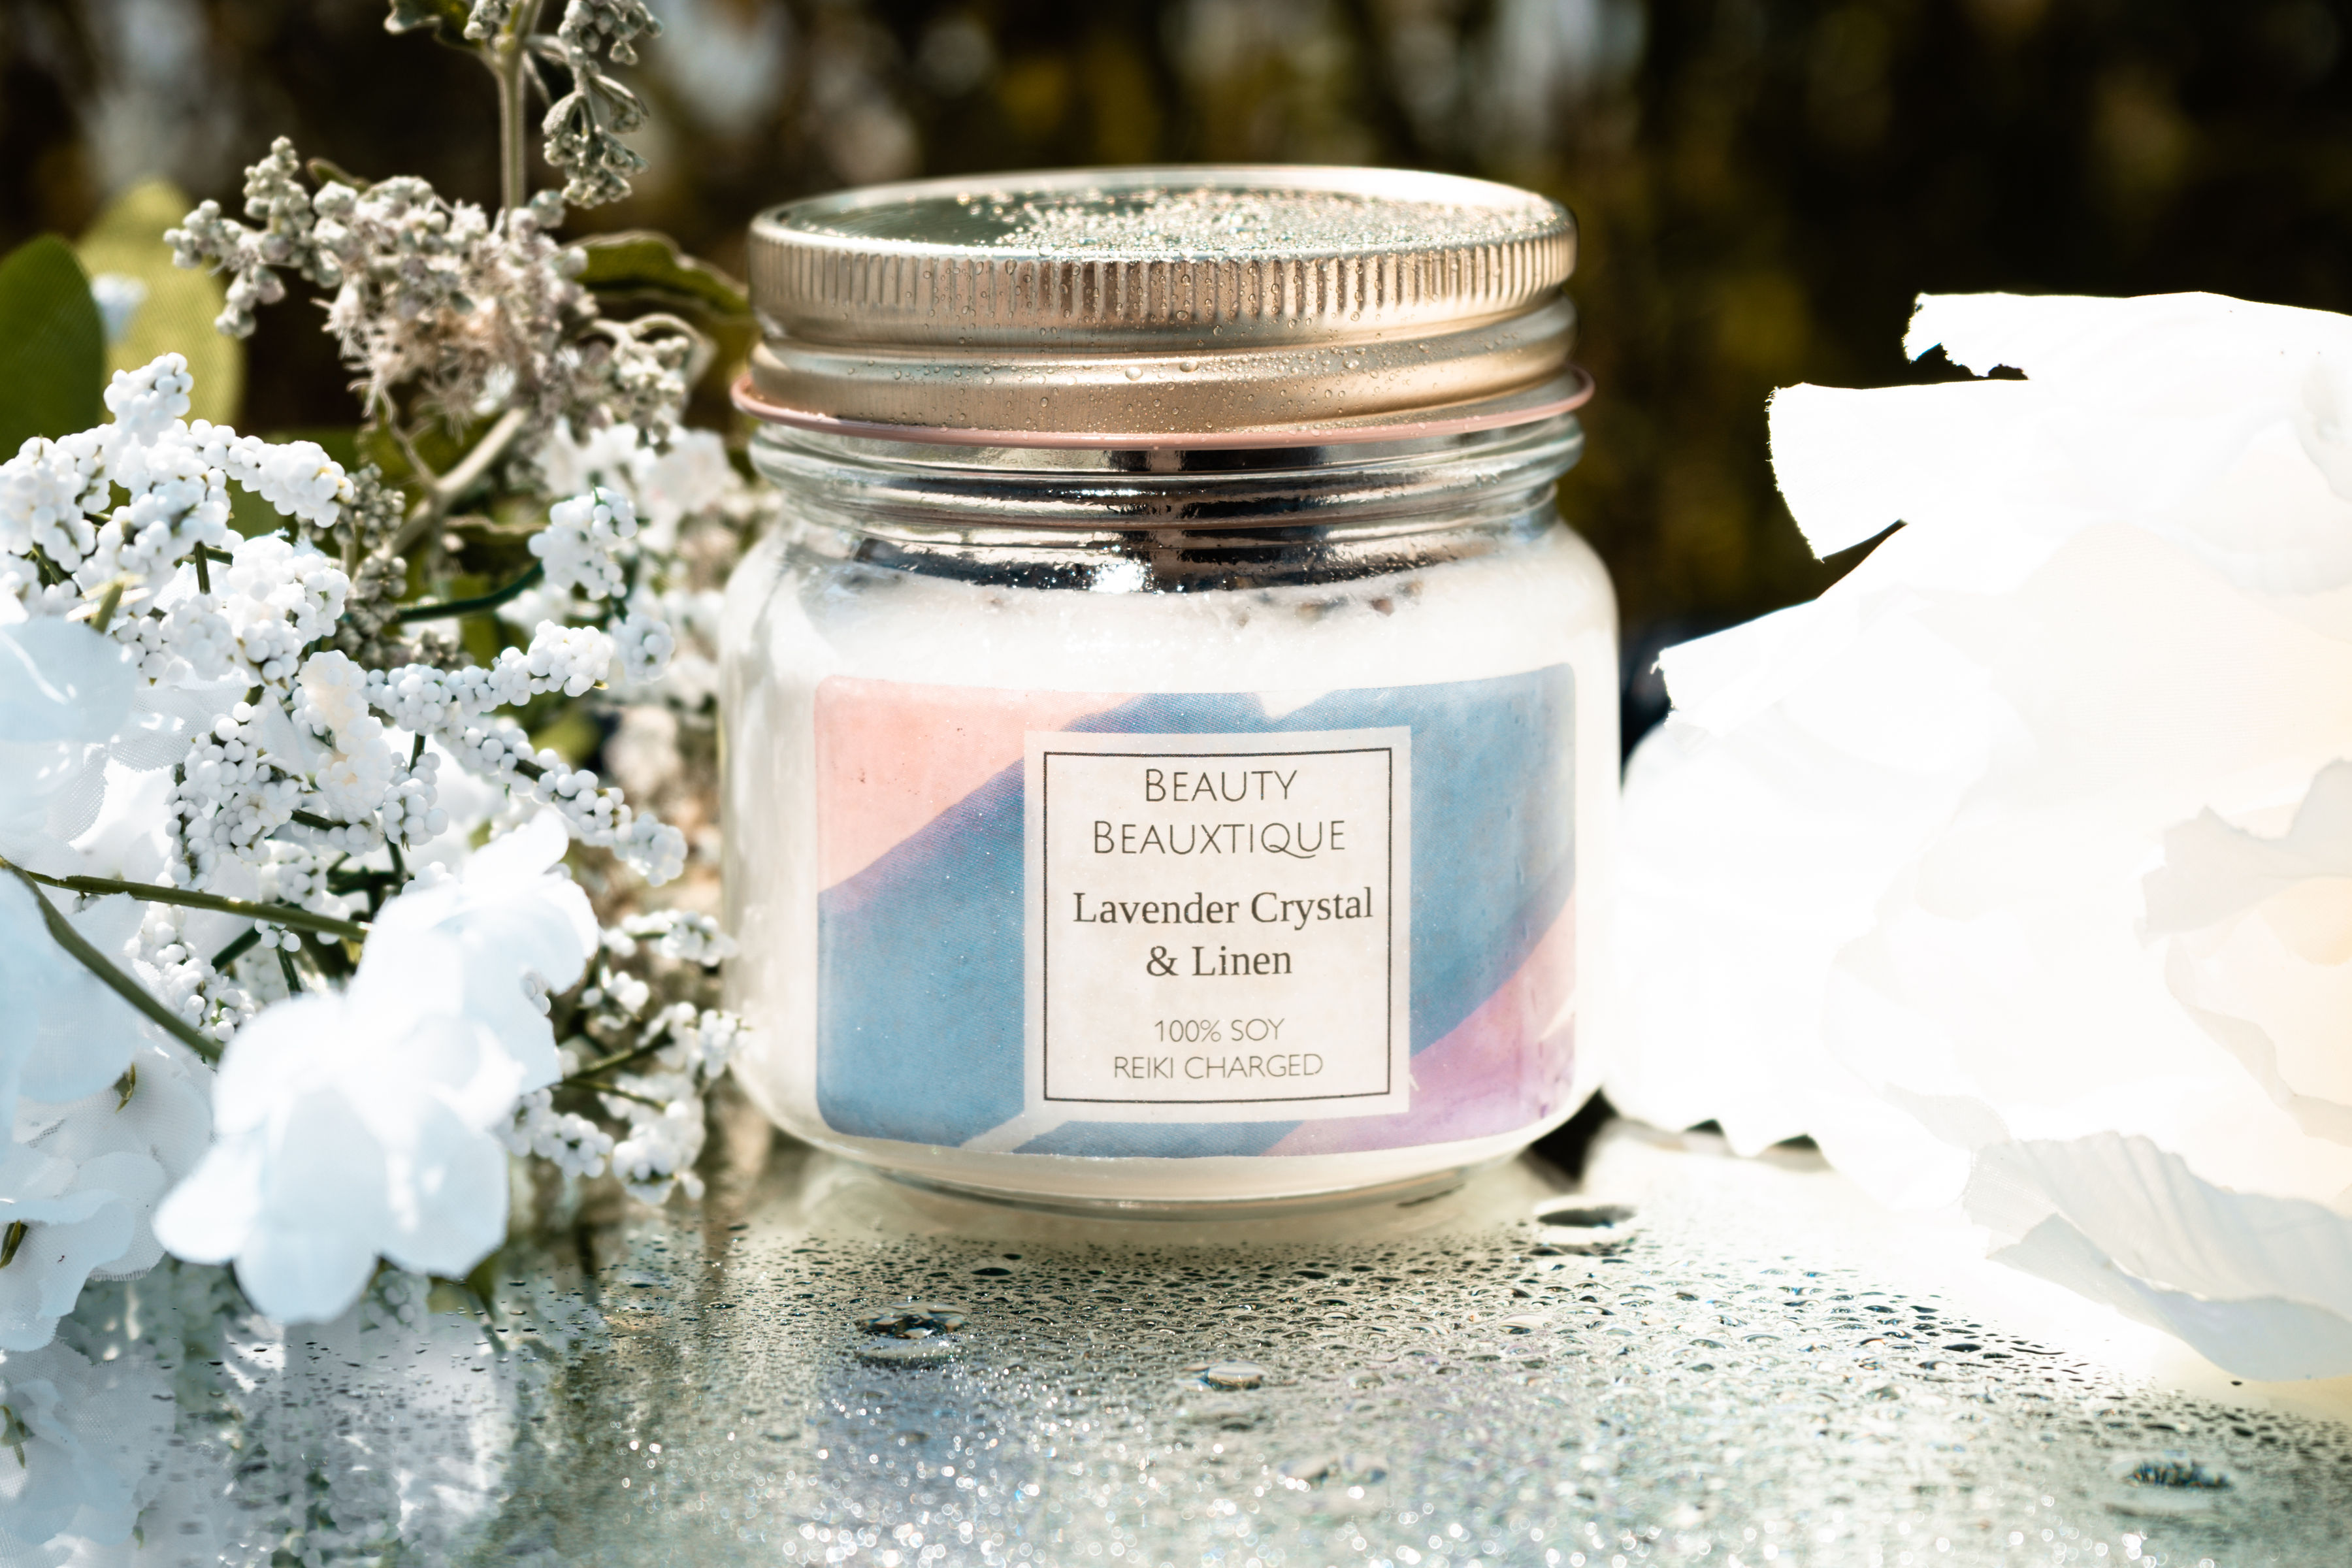 8 oz Lavender and Linen Candle